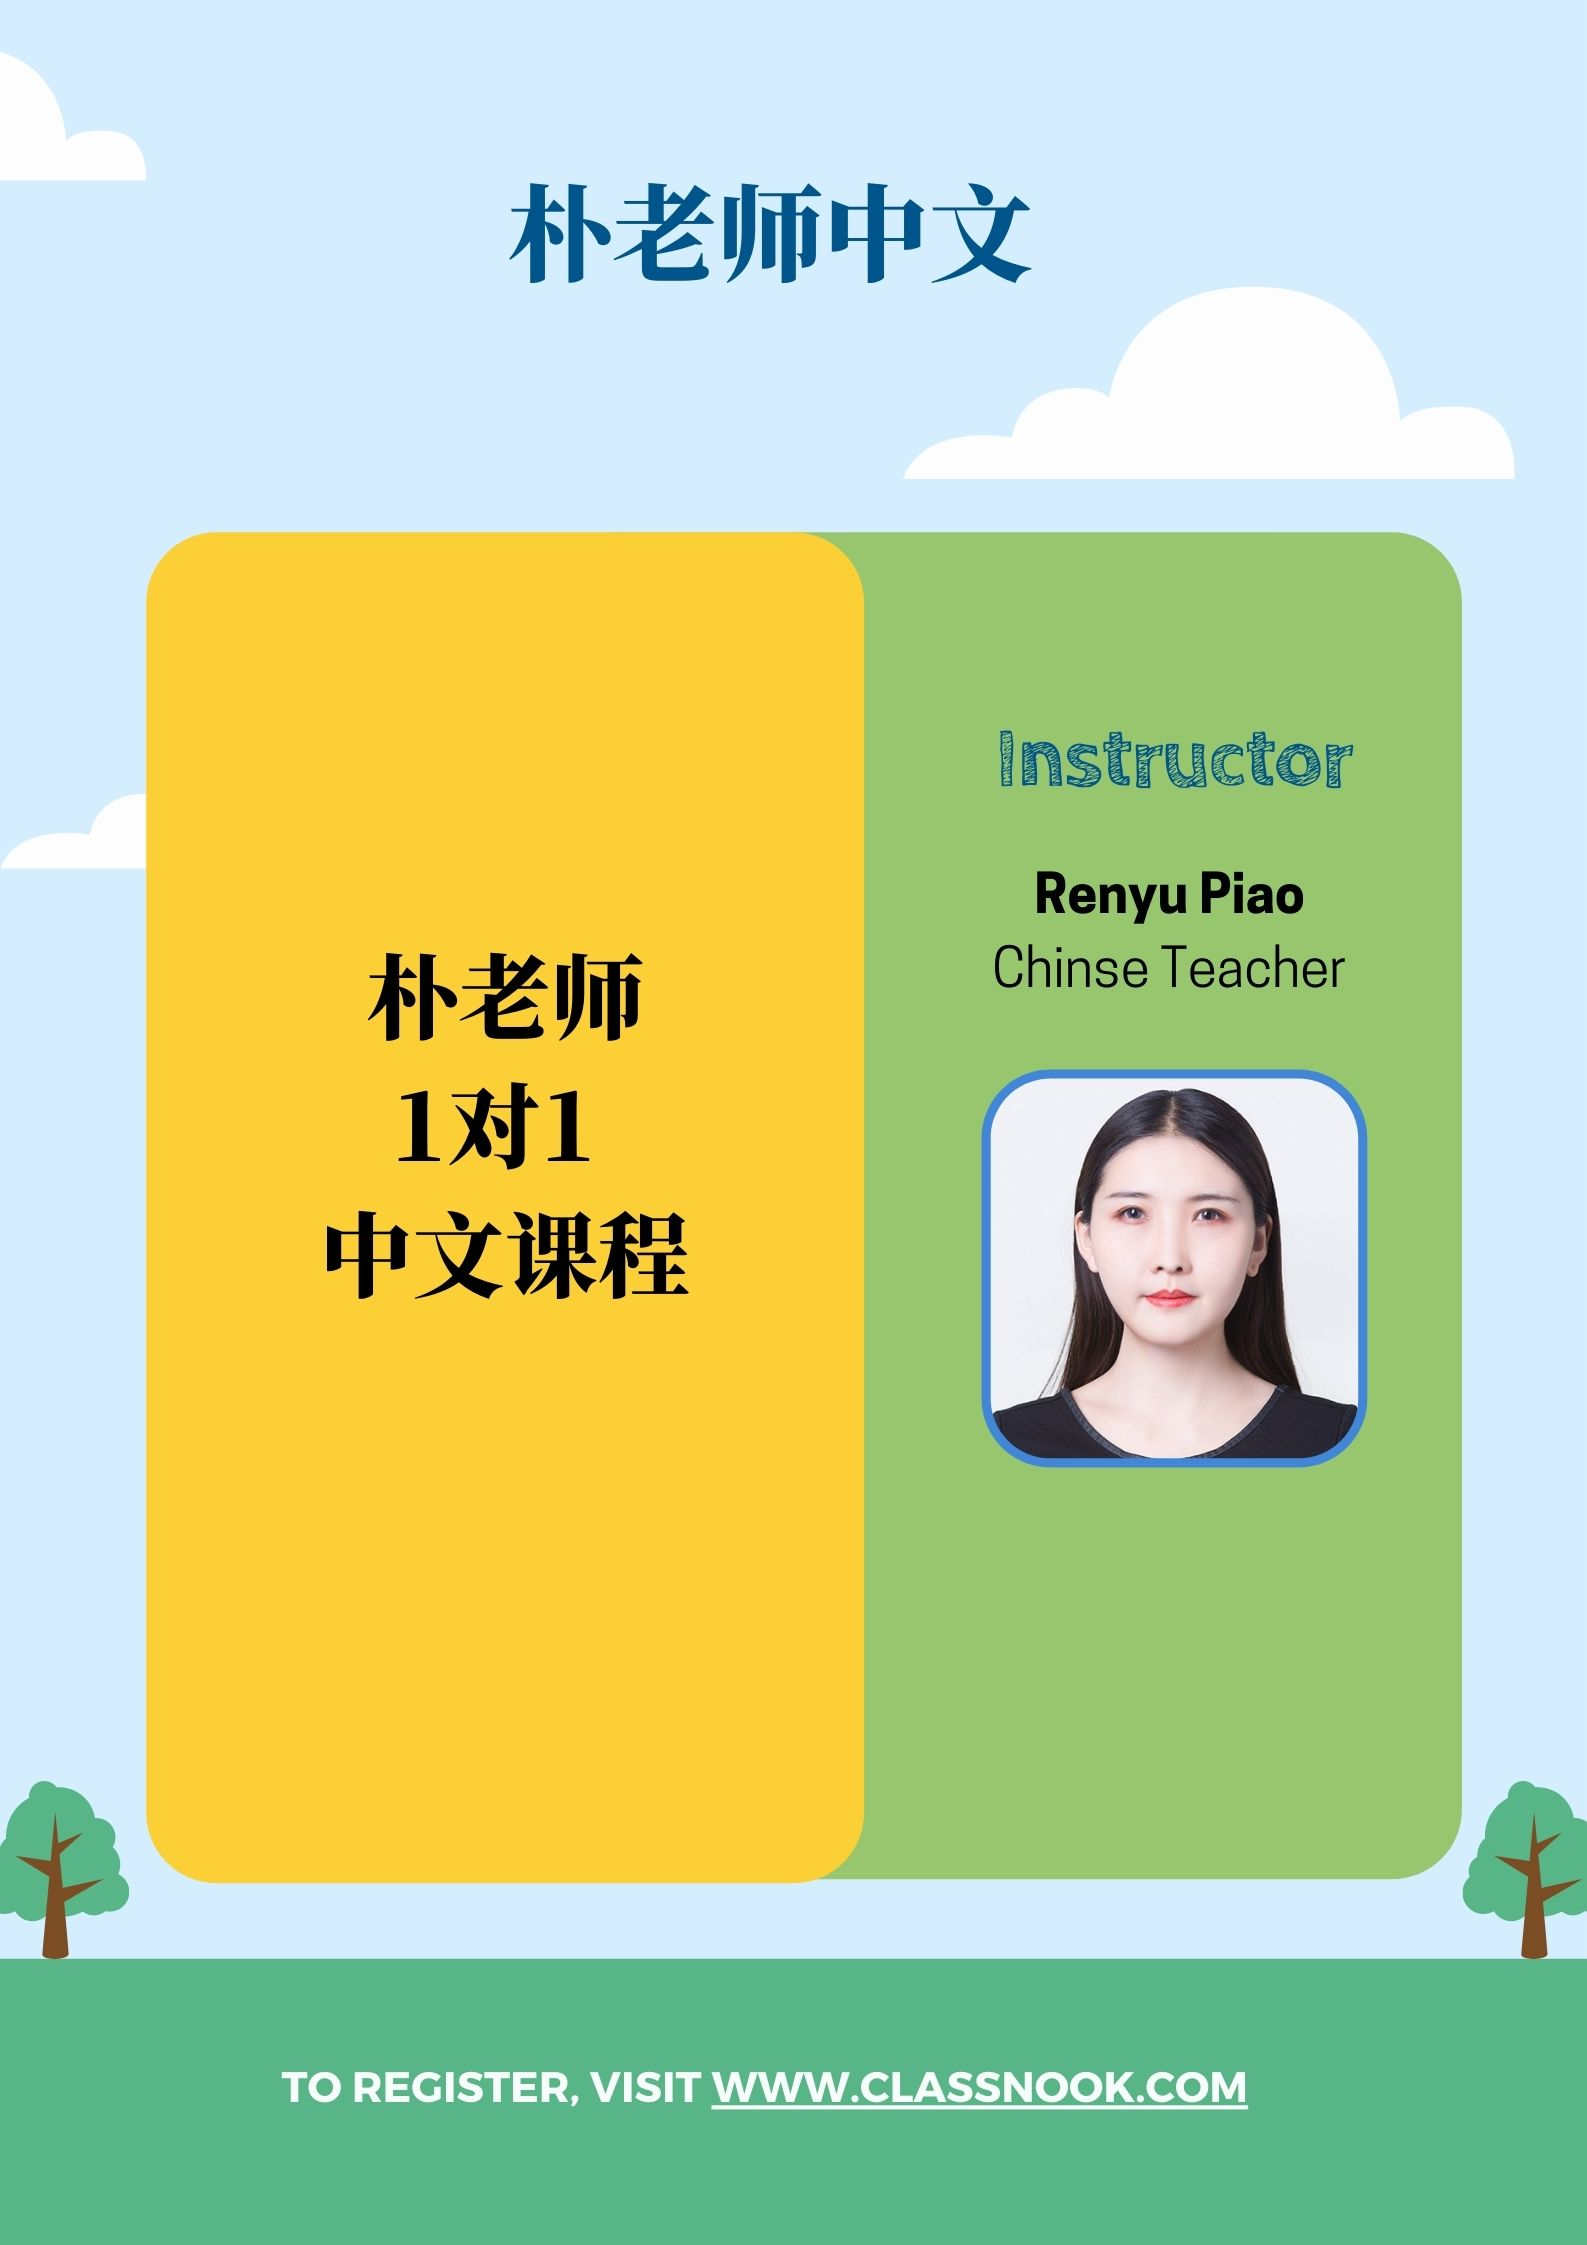 Copy of BB Course Posters 的複本 (9)